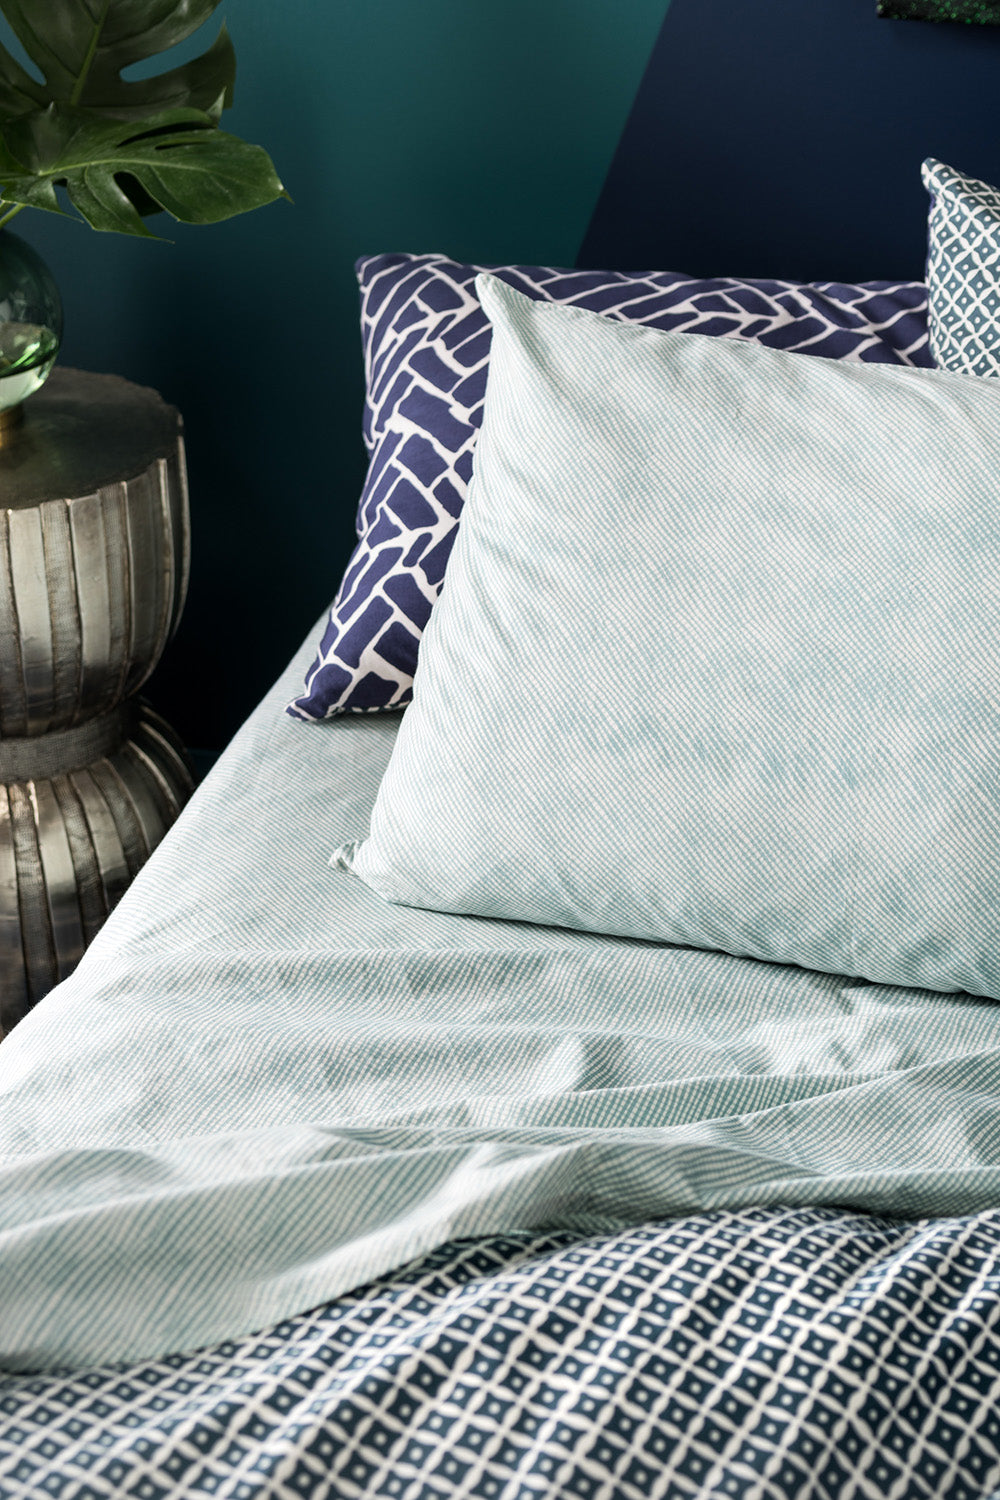 Sheets bedlinen turquoise bed myer kip and co sage and clare society of wanderers